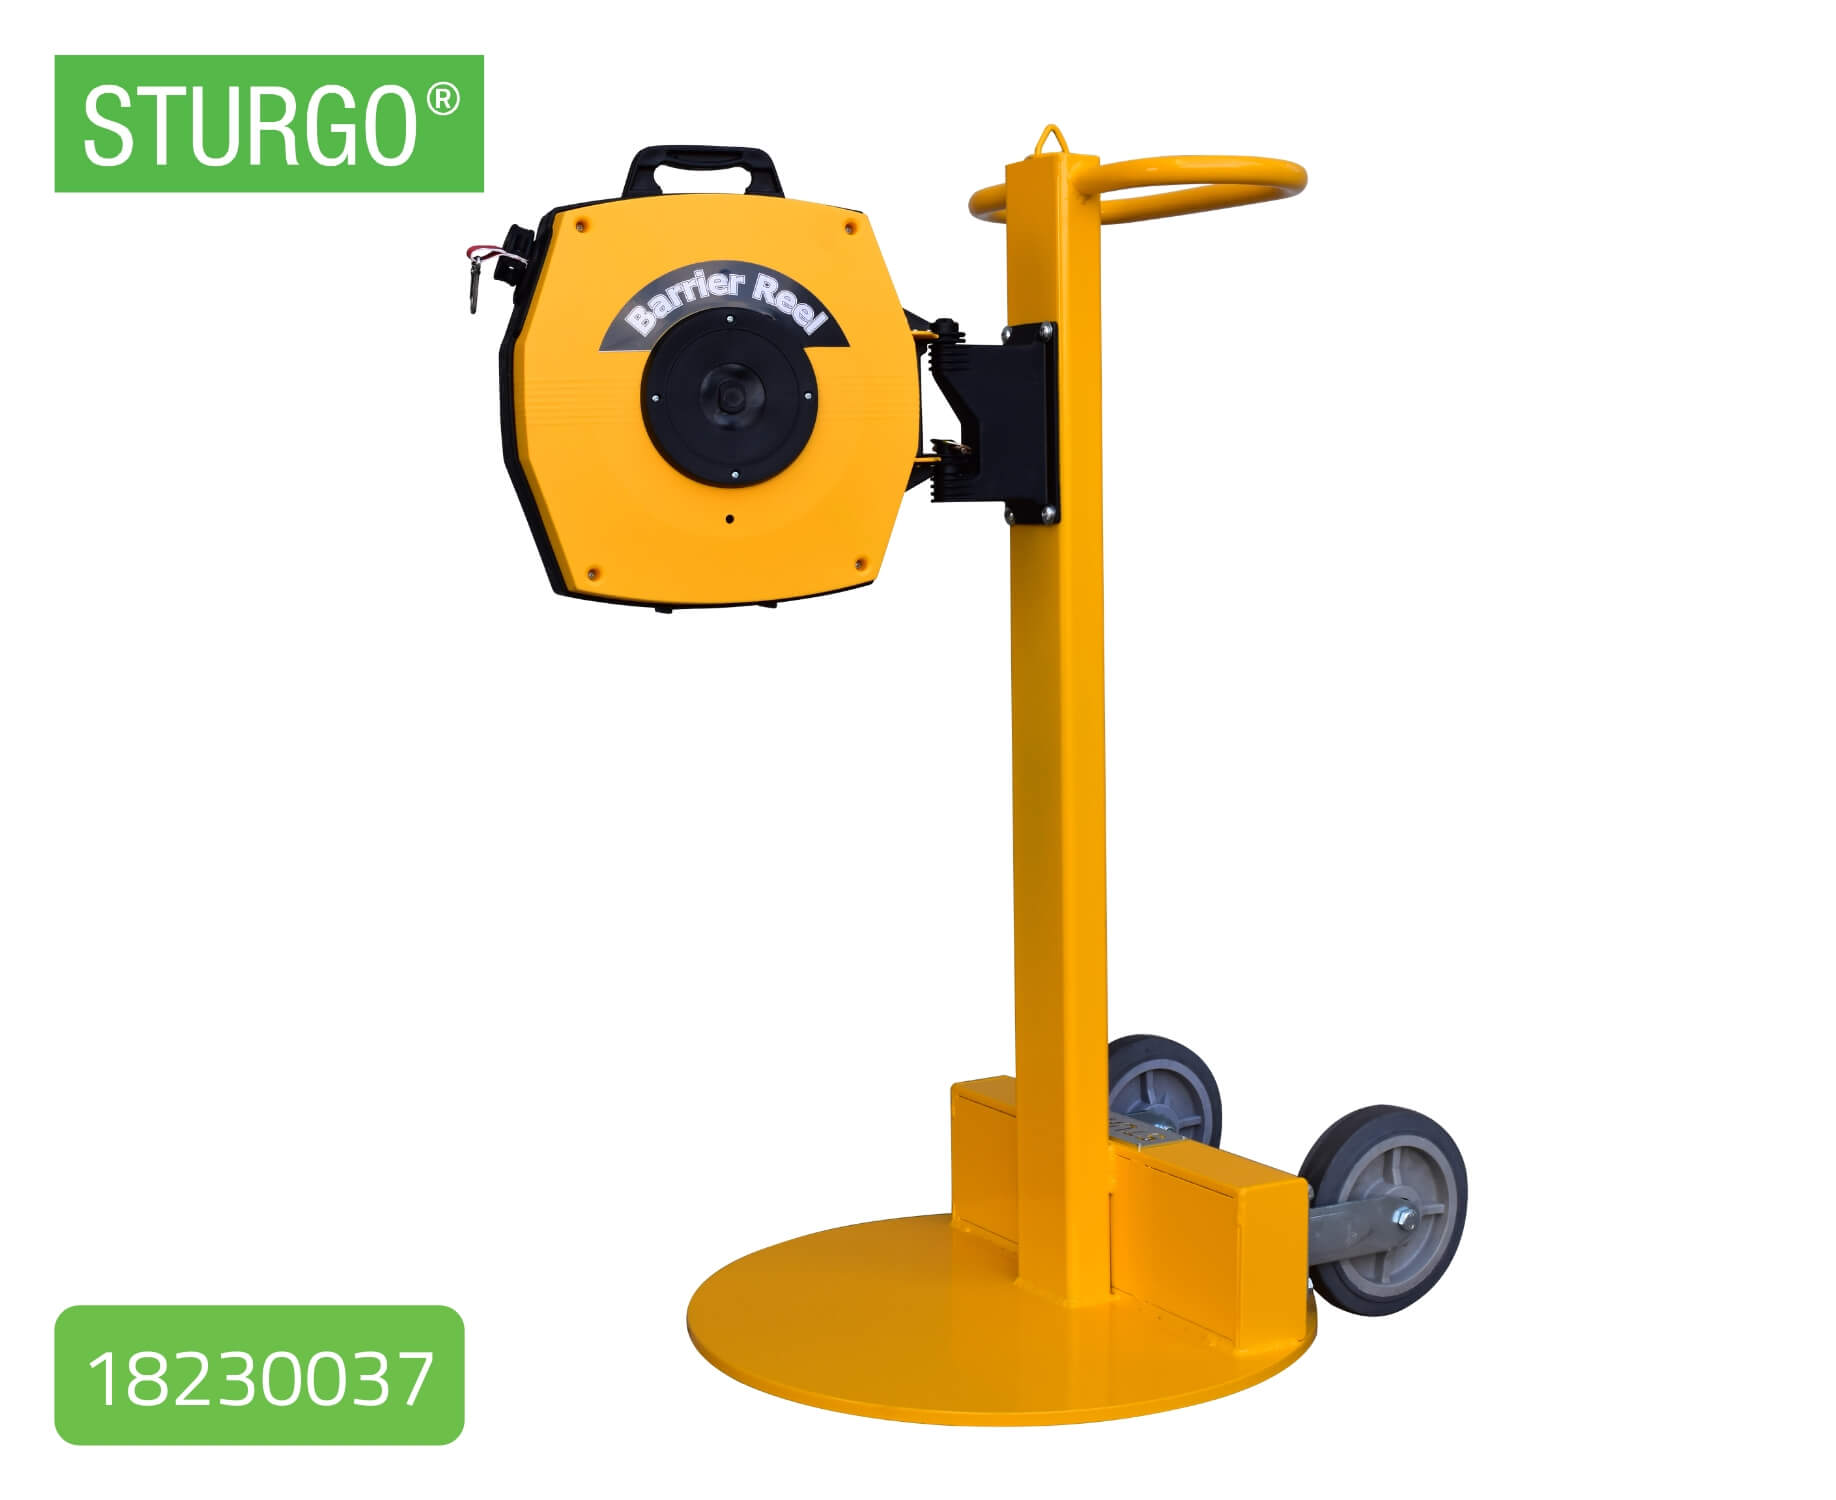 Custom STURGO® Mobile Stand for Retractable Tape Reels